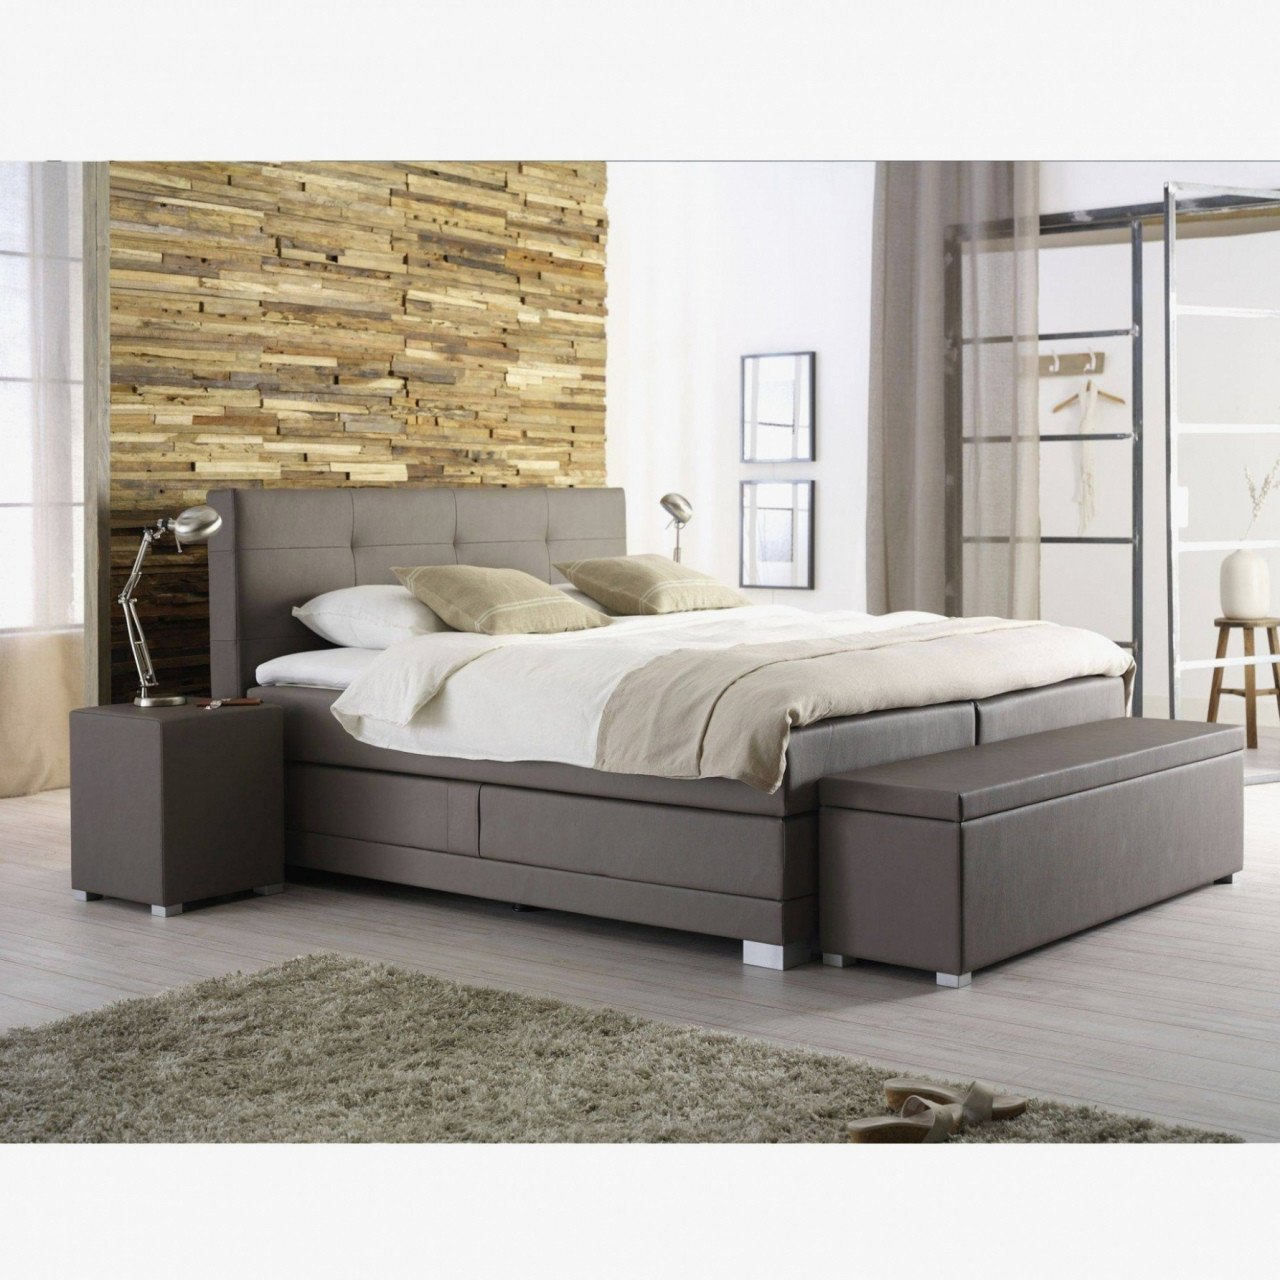 Log King Size Bedroom Set Best Of Bed with Drawers Under — Procura Home Blog